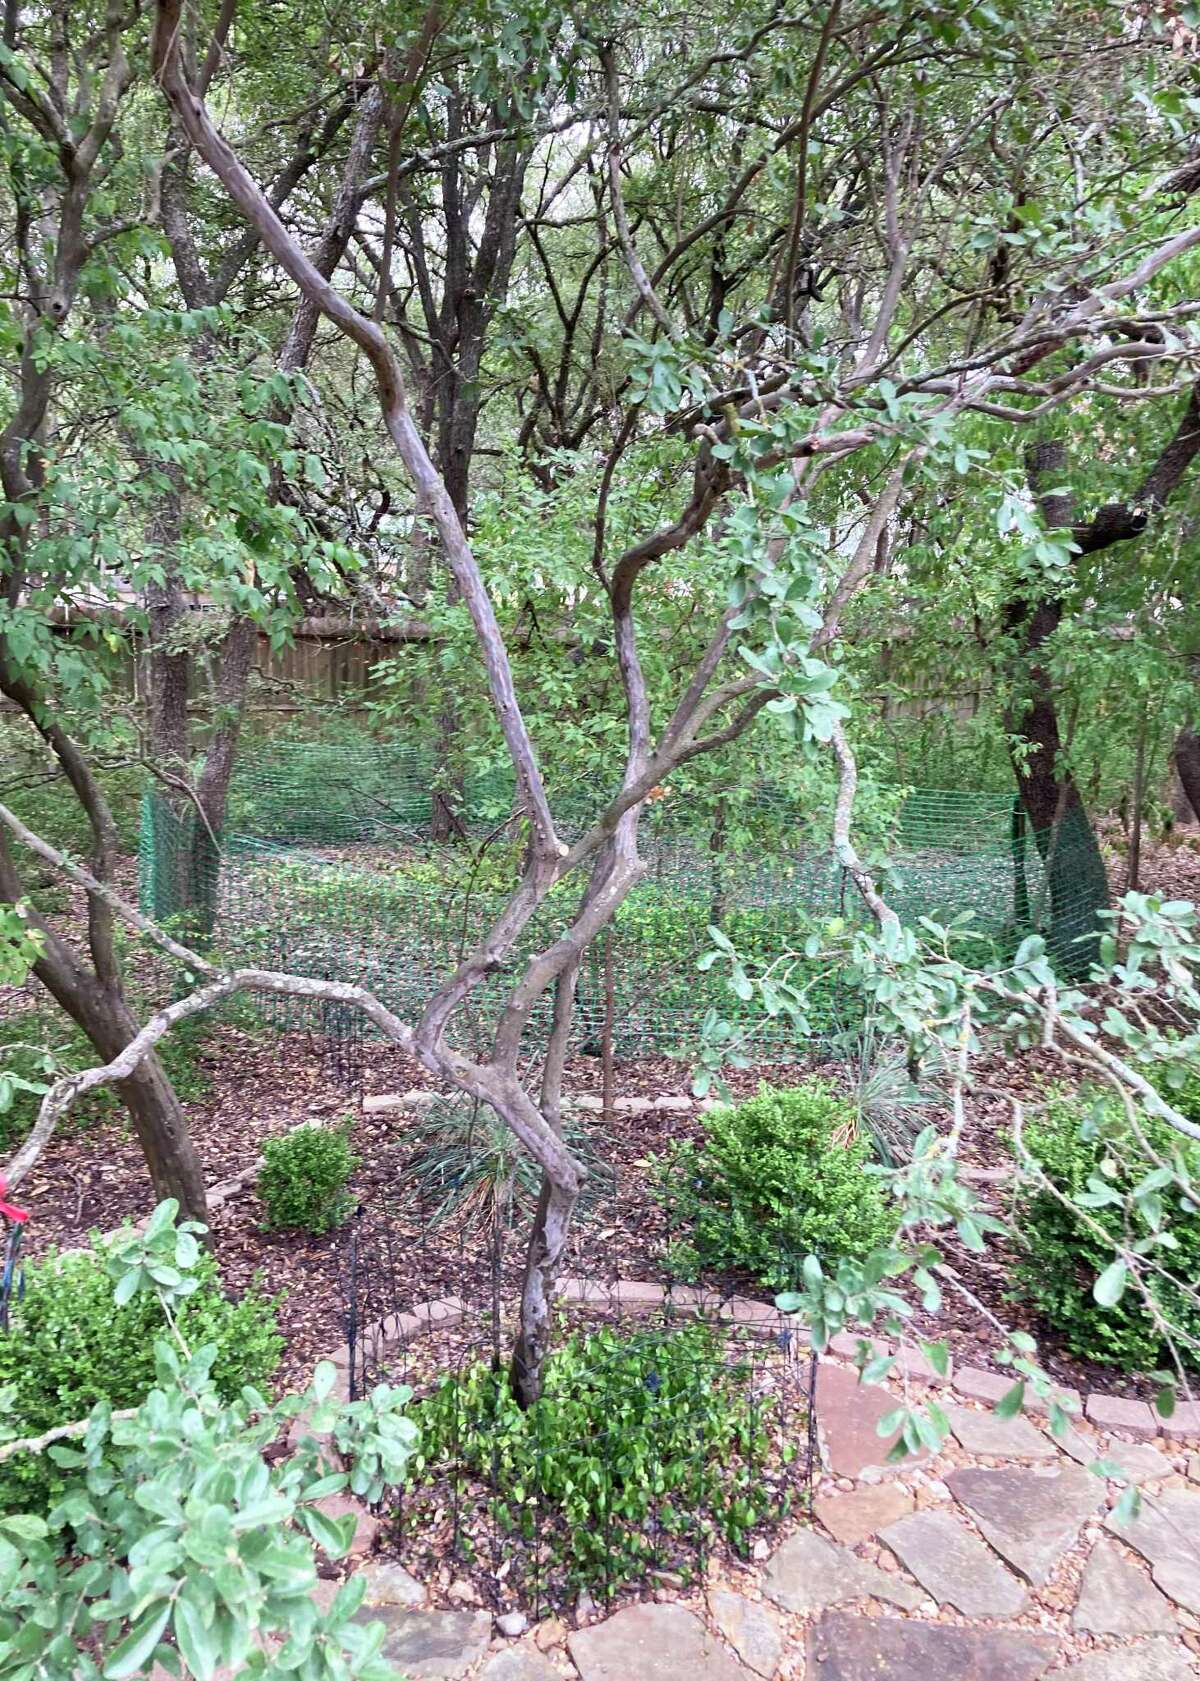 The Asian jasmine on the ground likely got too dry one time. It will probably bounce back.